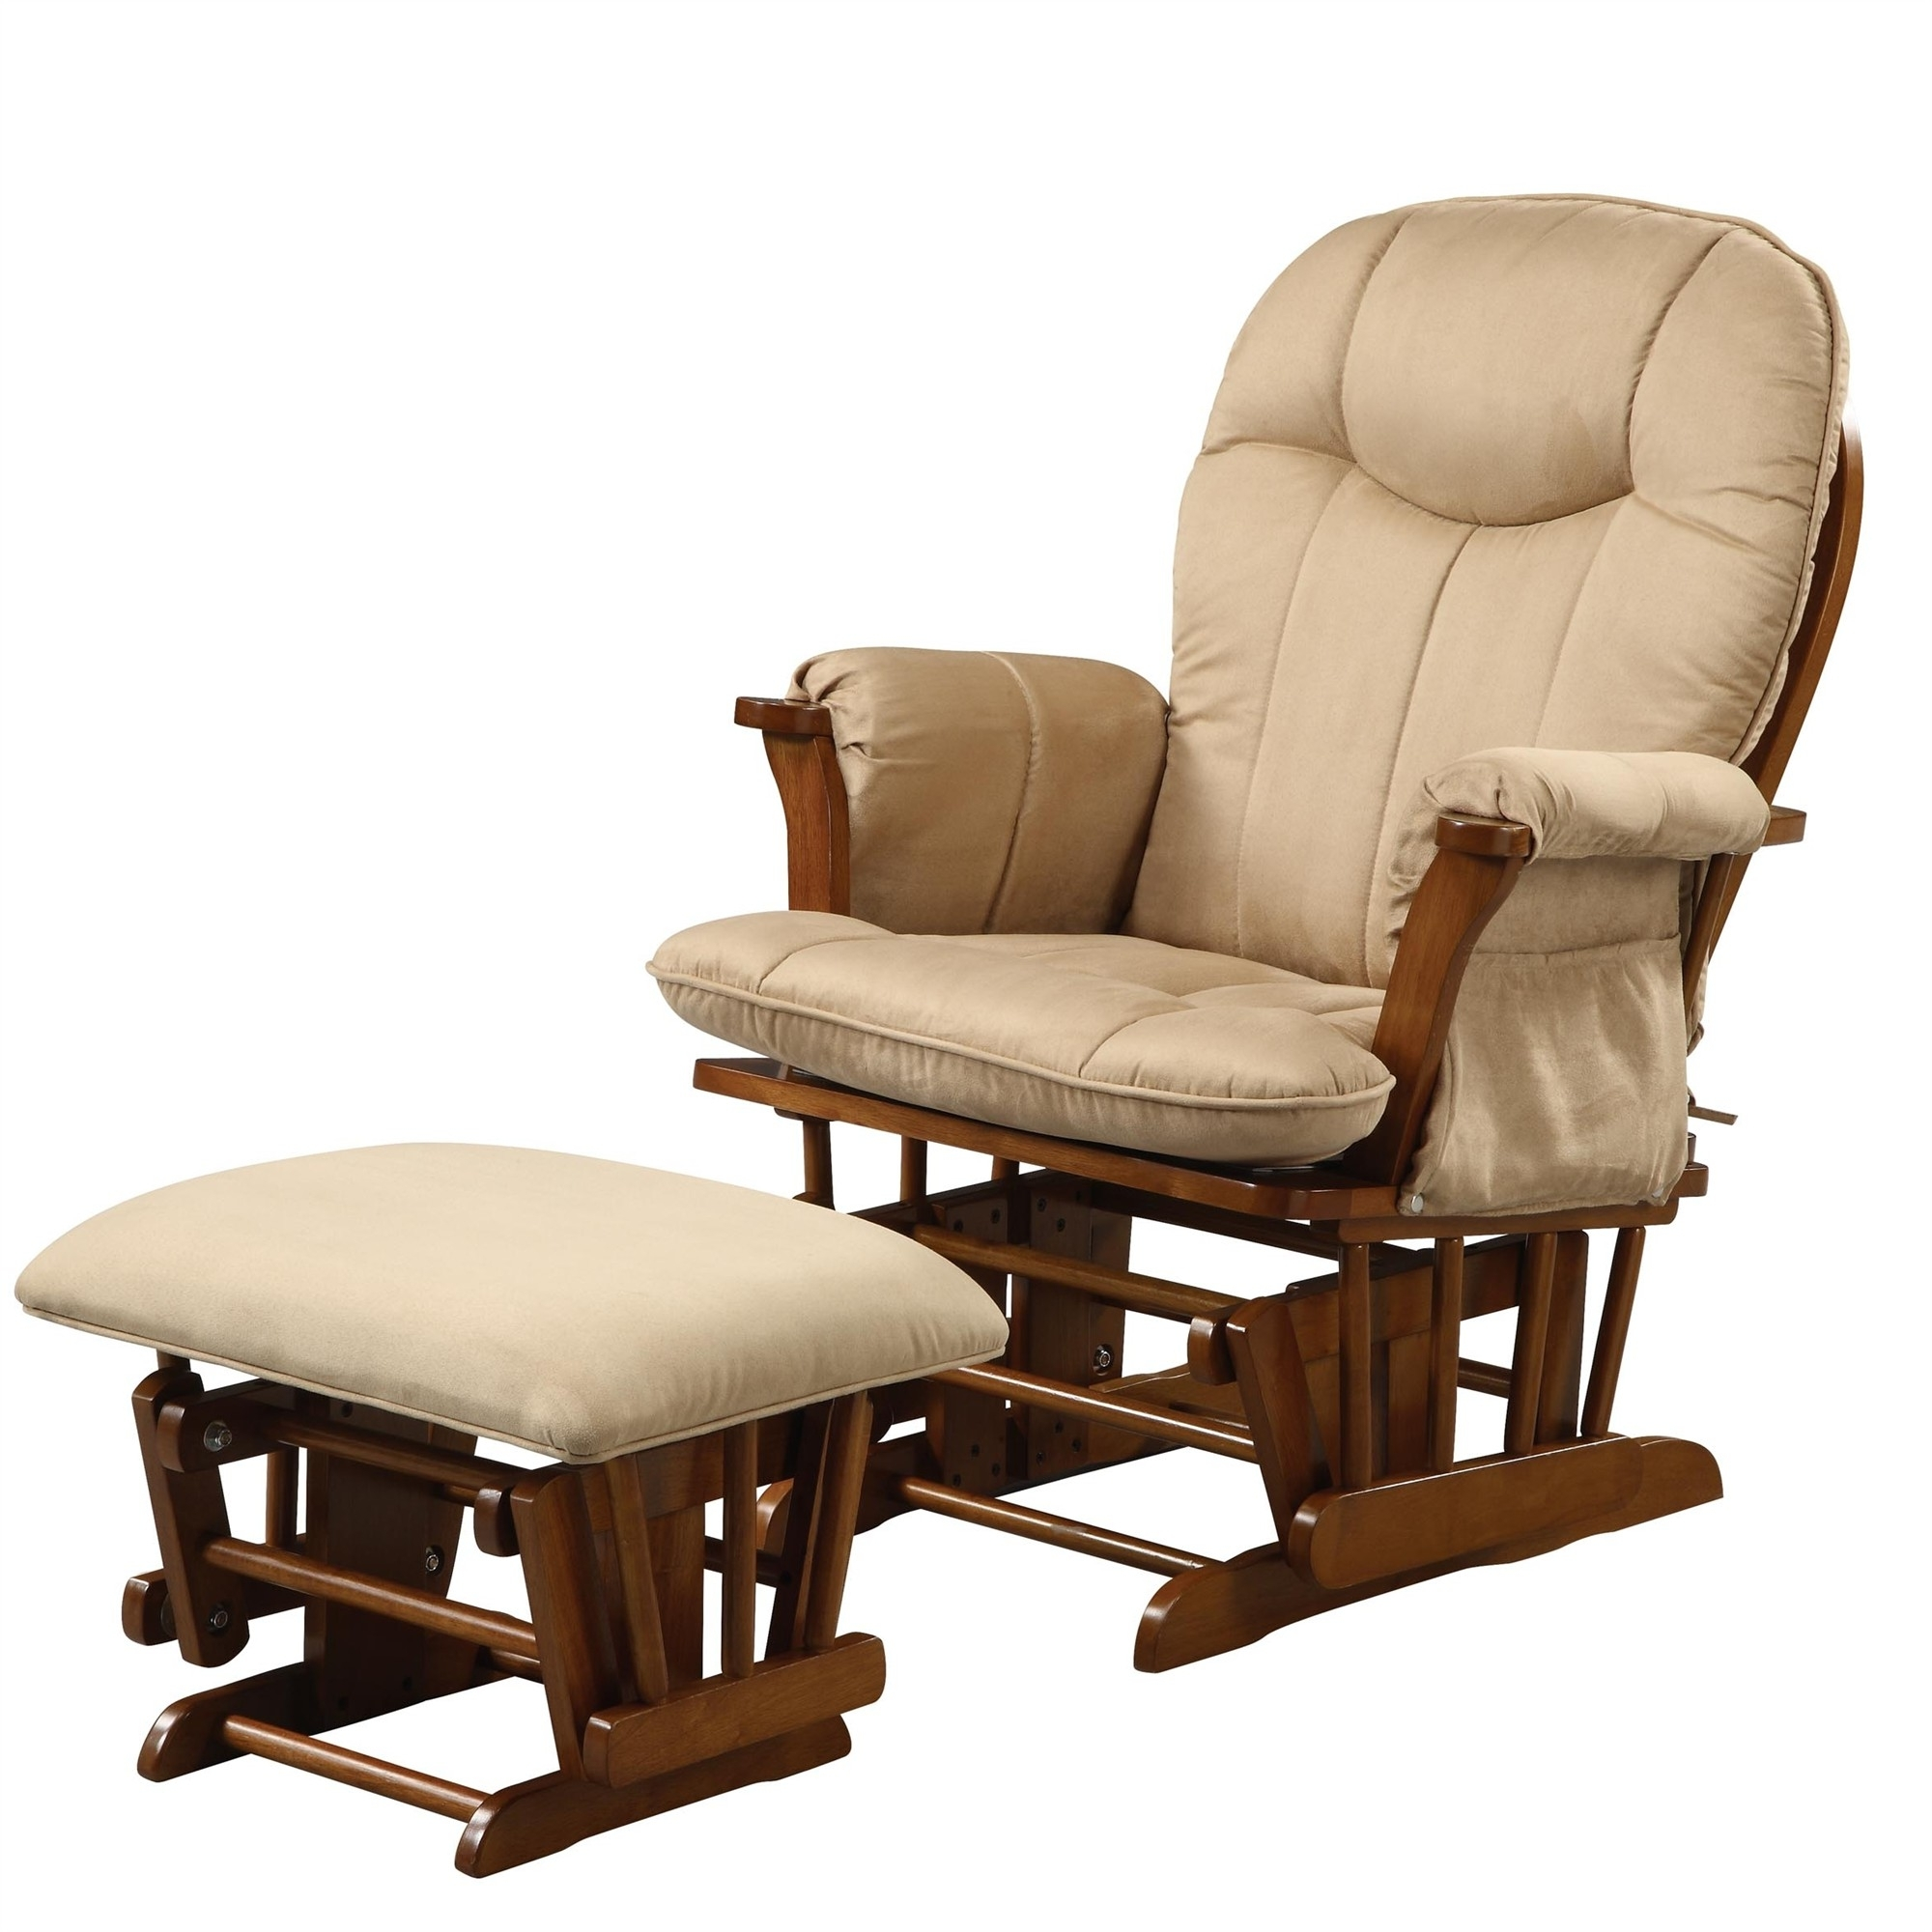 Ottoman: Perfect Shermag Glider Rocker And Ottoman On Home Designing Within Most Up To Date Rocking Chairs With Ottoman (View 10 of 20)